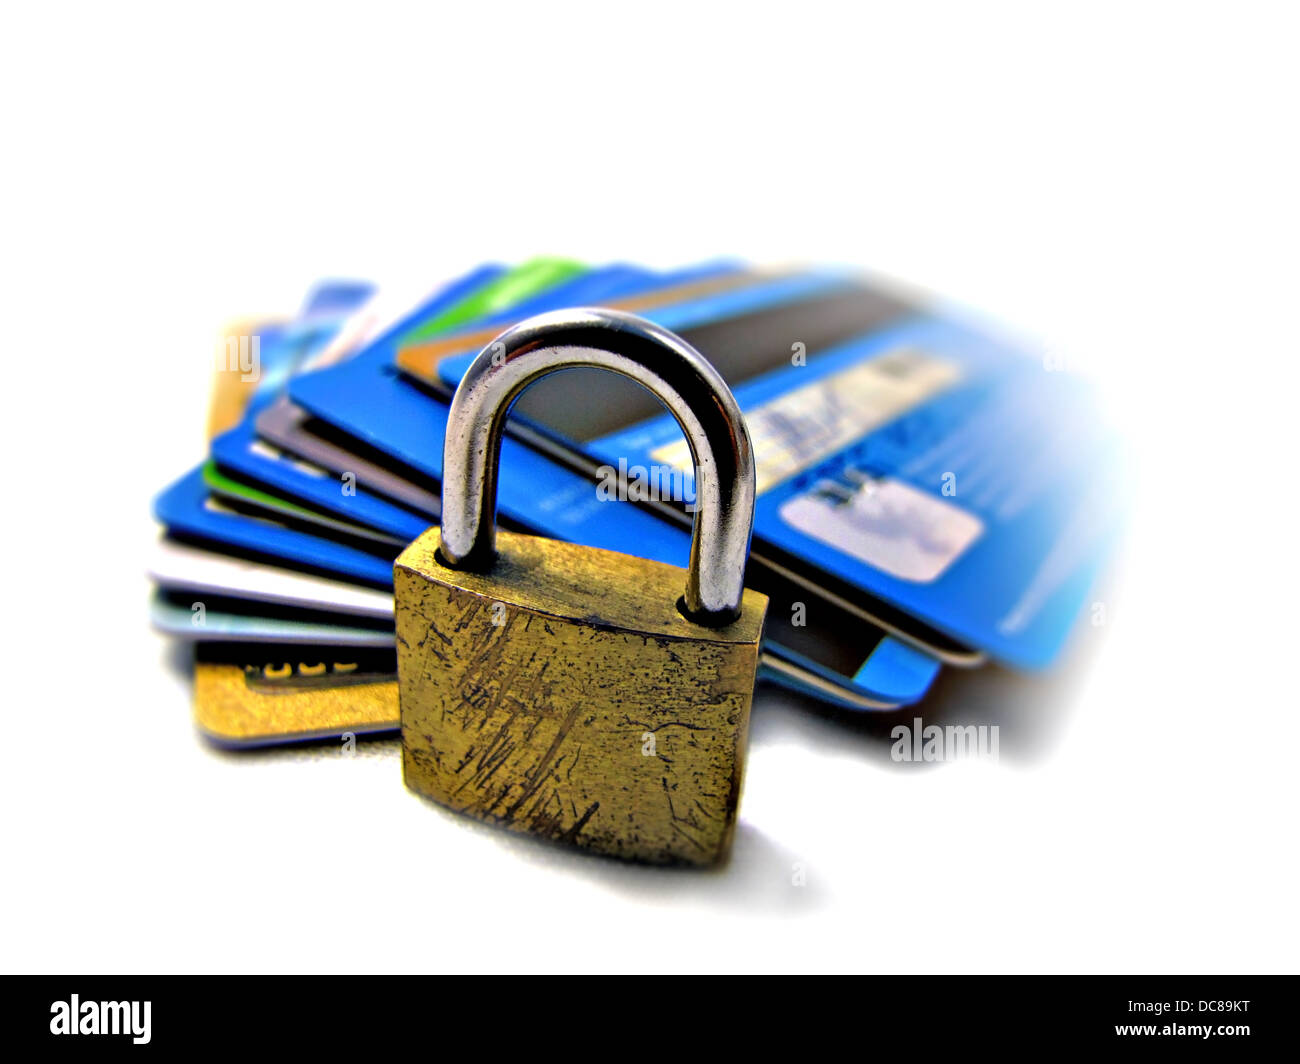 Credit card security safety - pin and password - Stock Image